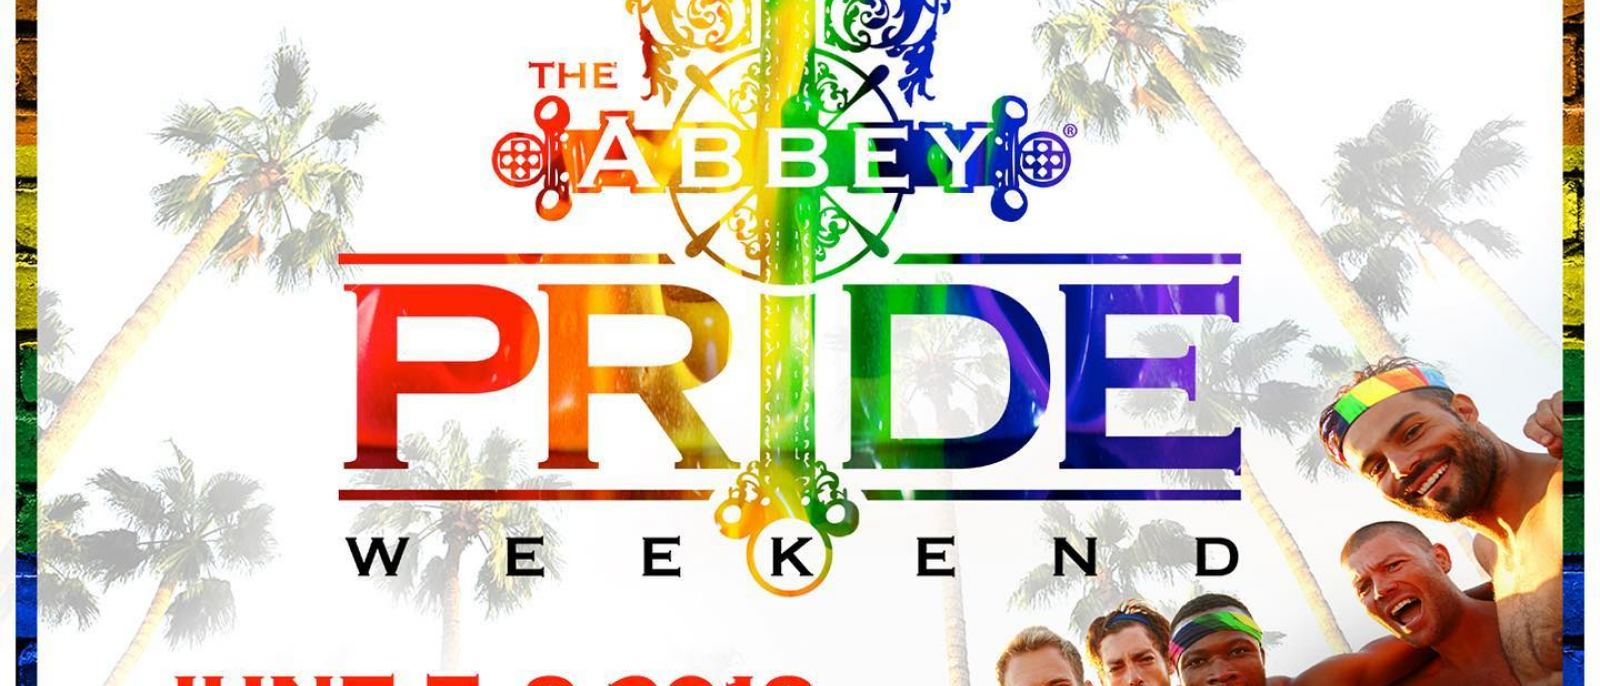 The Abbey Food & Bar Pride Weekend 2019